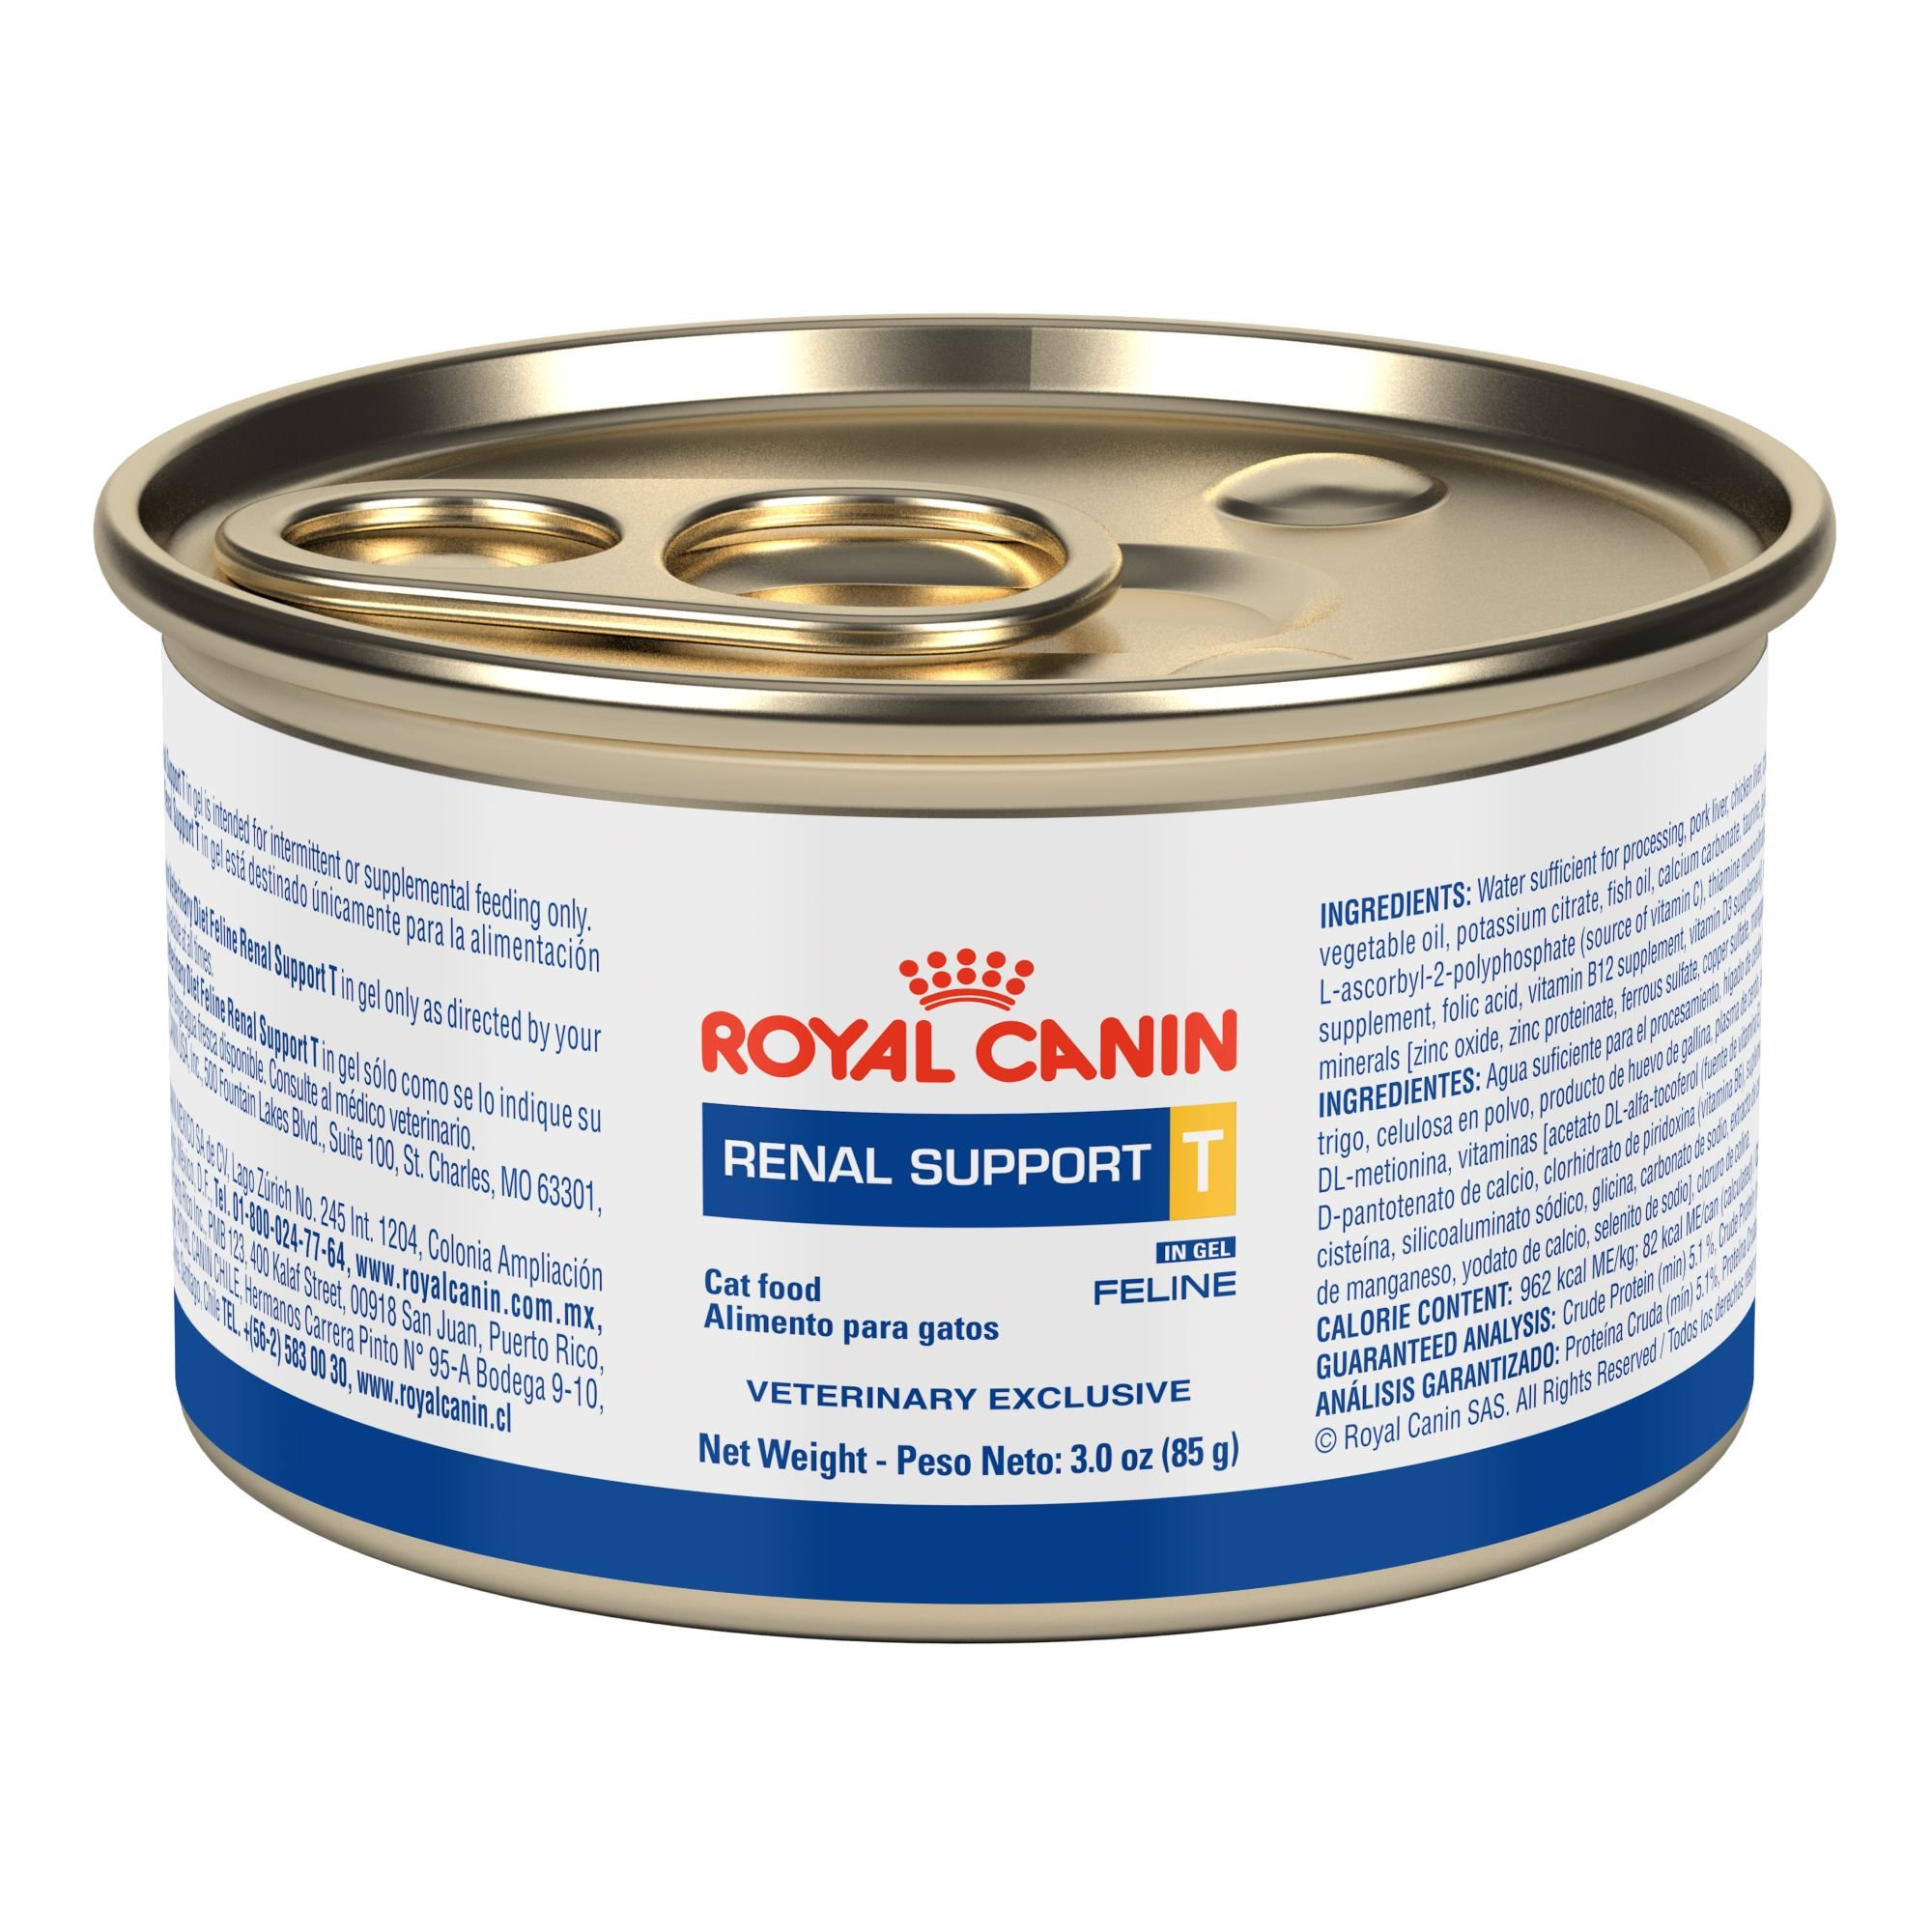 Royal Canin Renal Support T SIG Canned Cat Food (24/3oz cans) by Unknown by Unknown